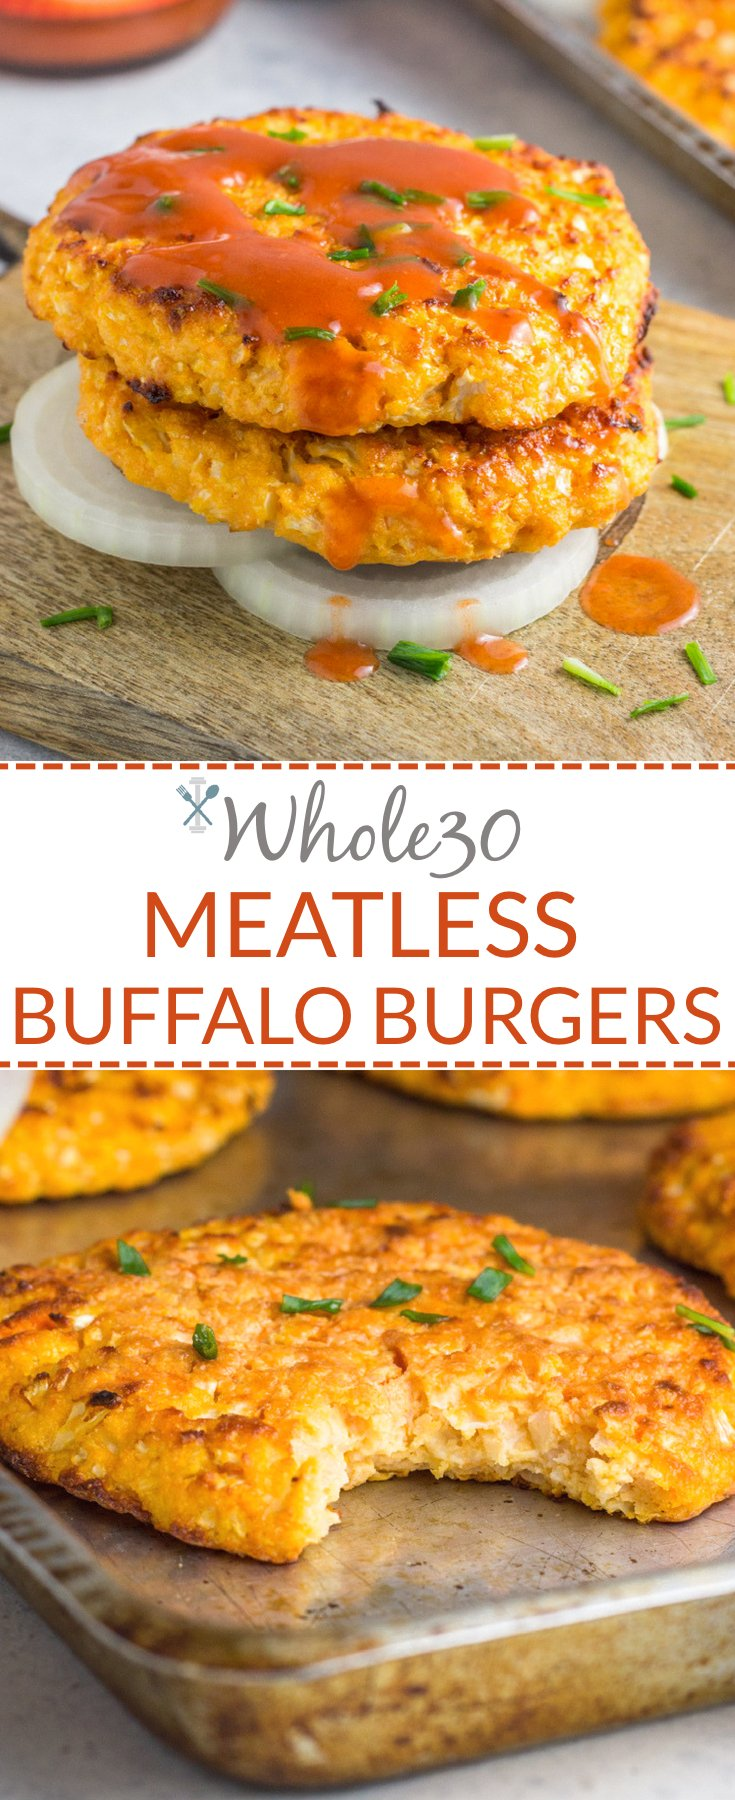 These meatless burgers are the perfect addition to any Whole30! Easy to make, simple ingredients, and tons of flavor! Vegetarian & Paleo, Grain Free & Dairy Free